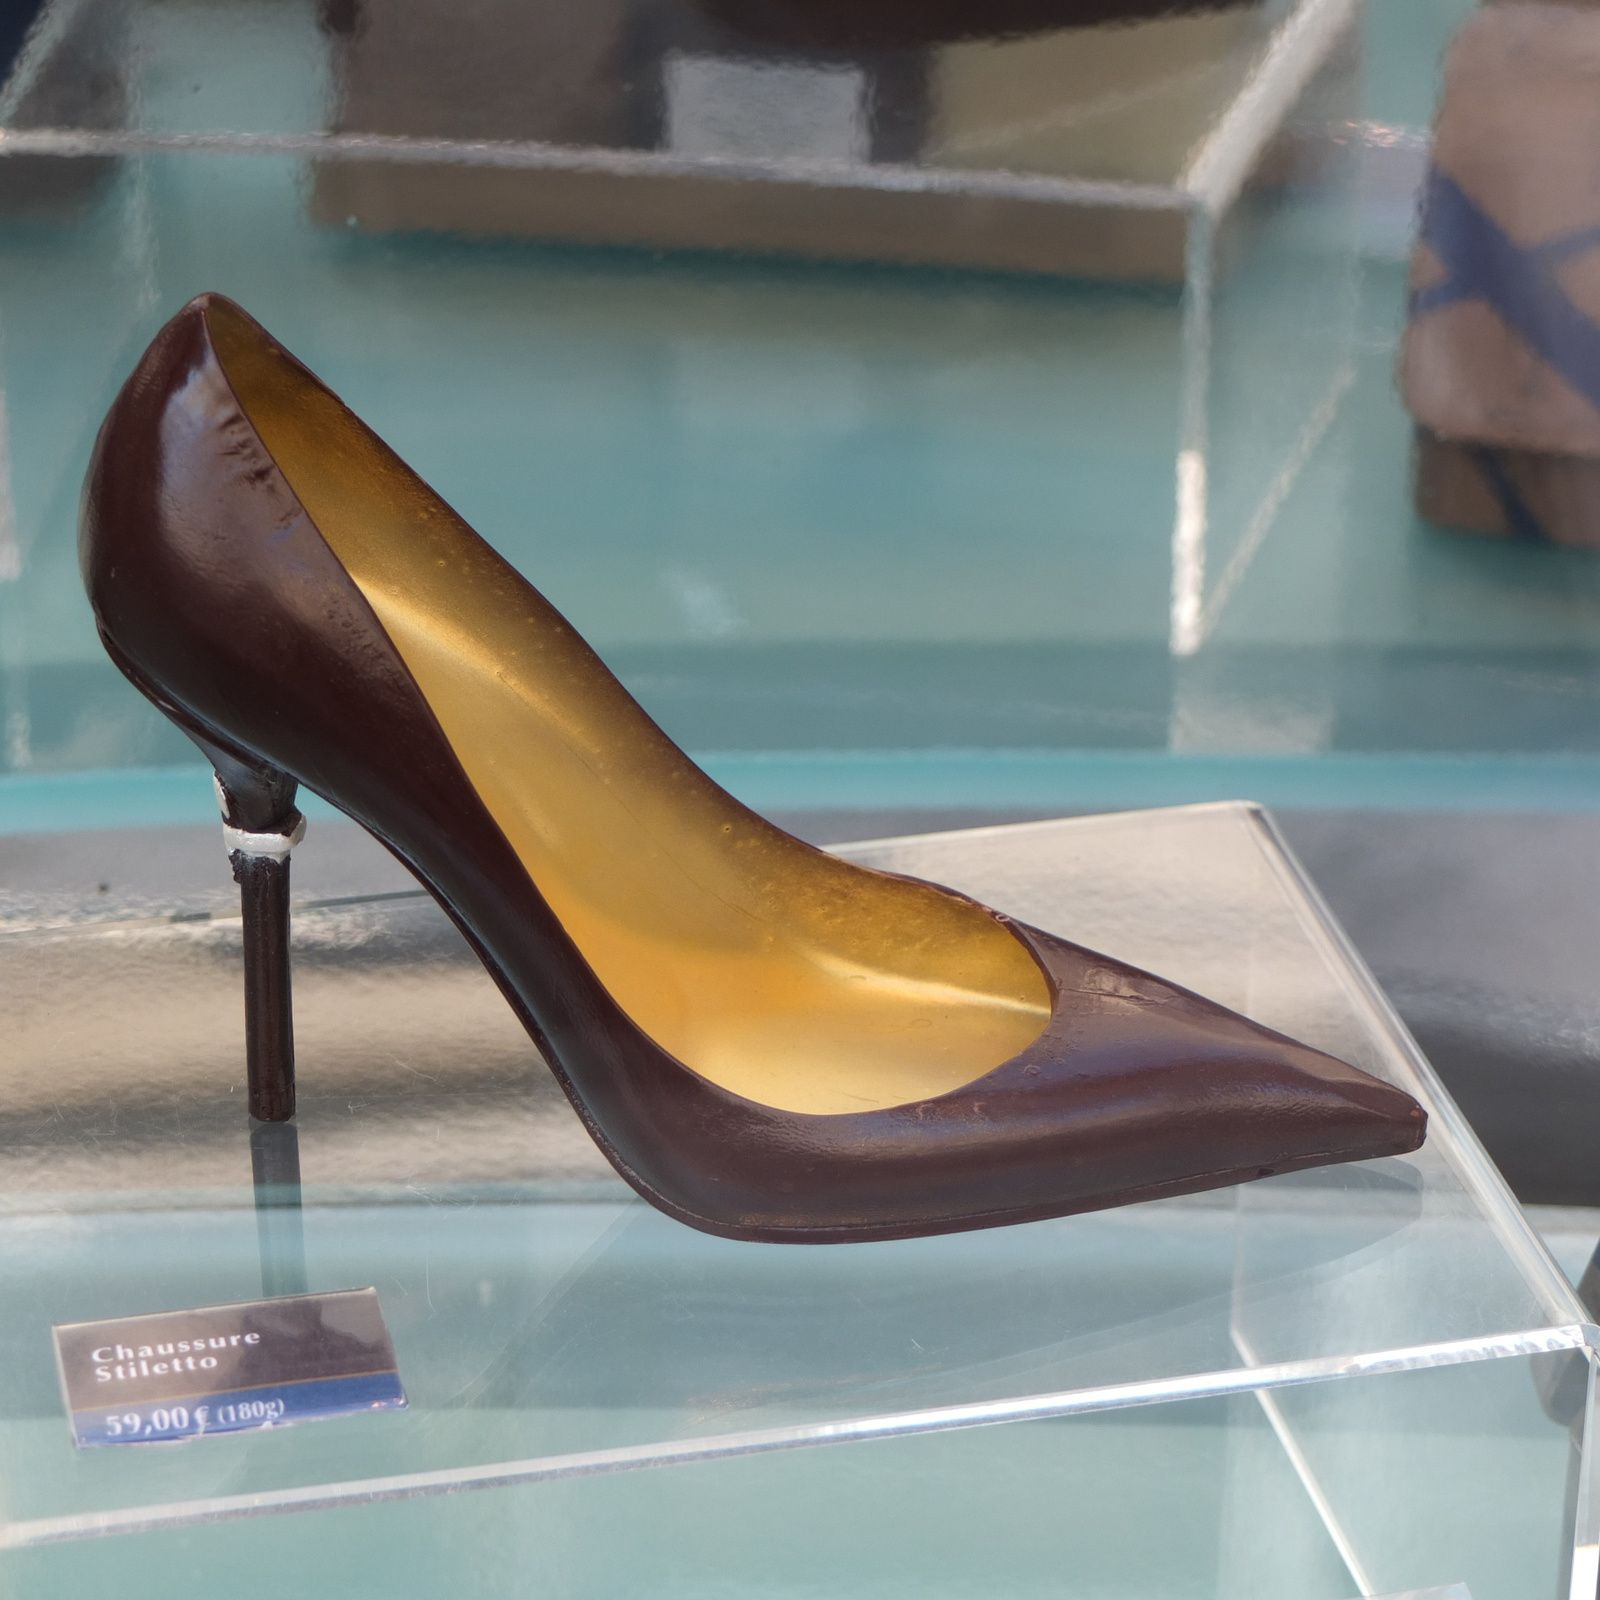 Chic (une luxueuse ganterie), choc (stiletto en chocolat chez Jean-Paul Hévin) et glamour (l'ultra féminité de l'univers Chantal Thomass).